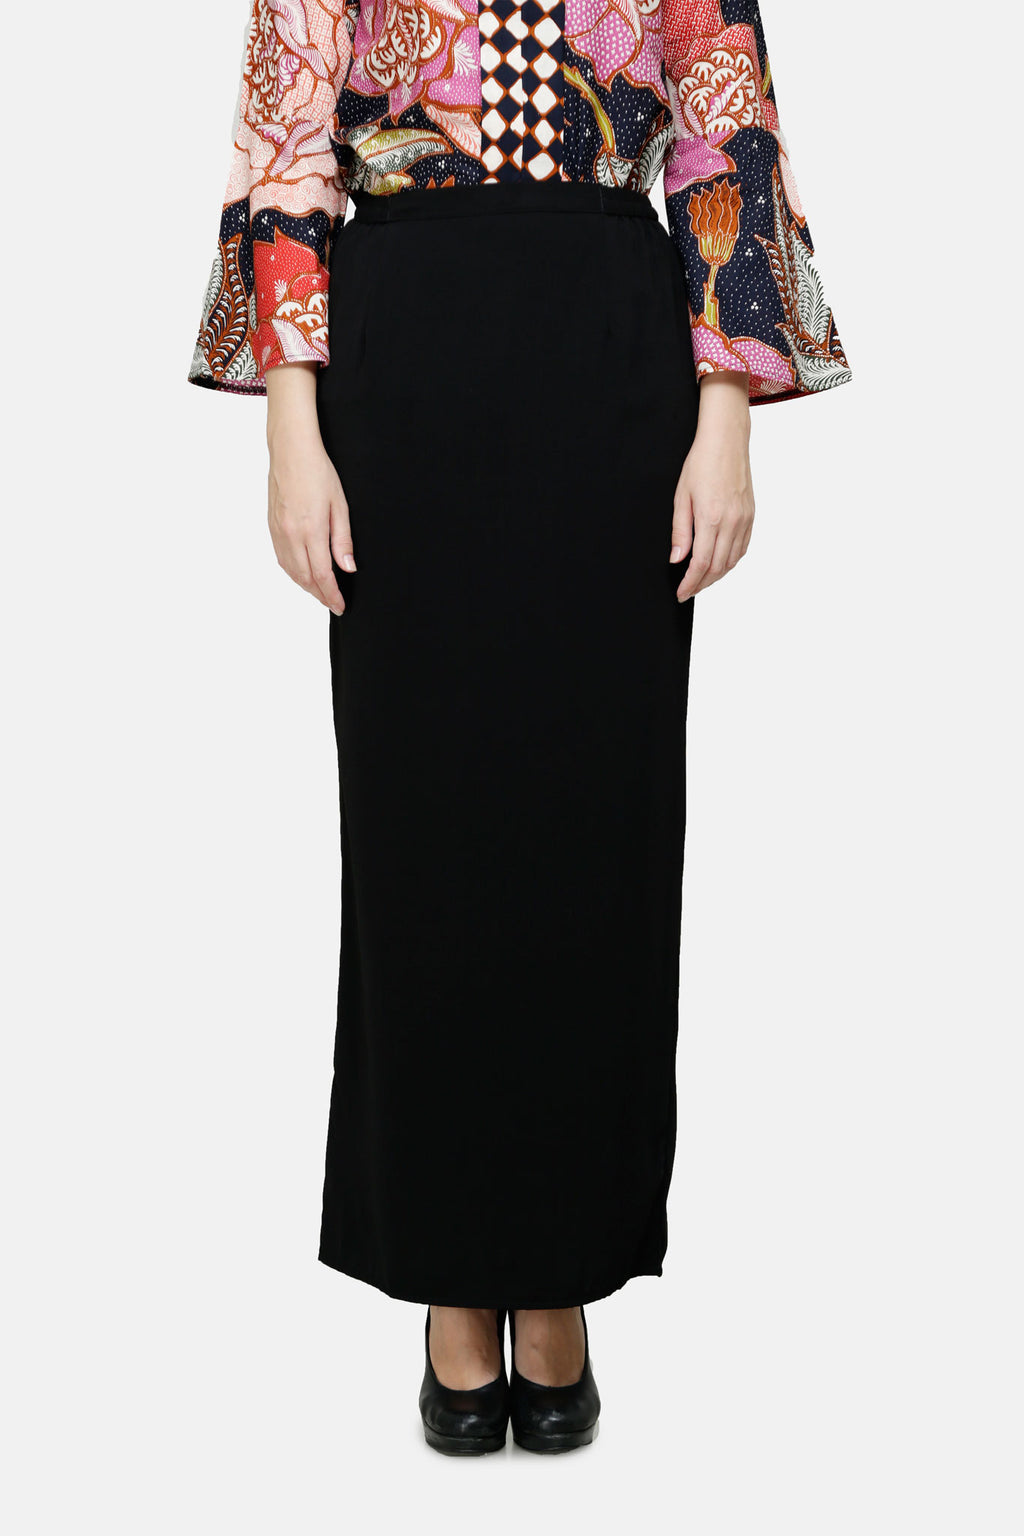 Alia Skirt In Black